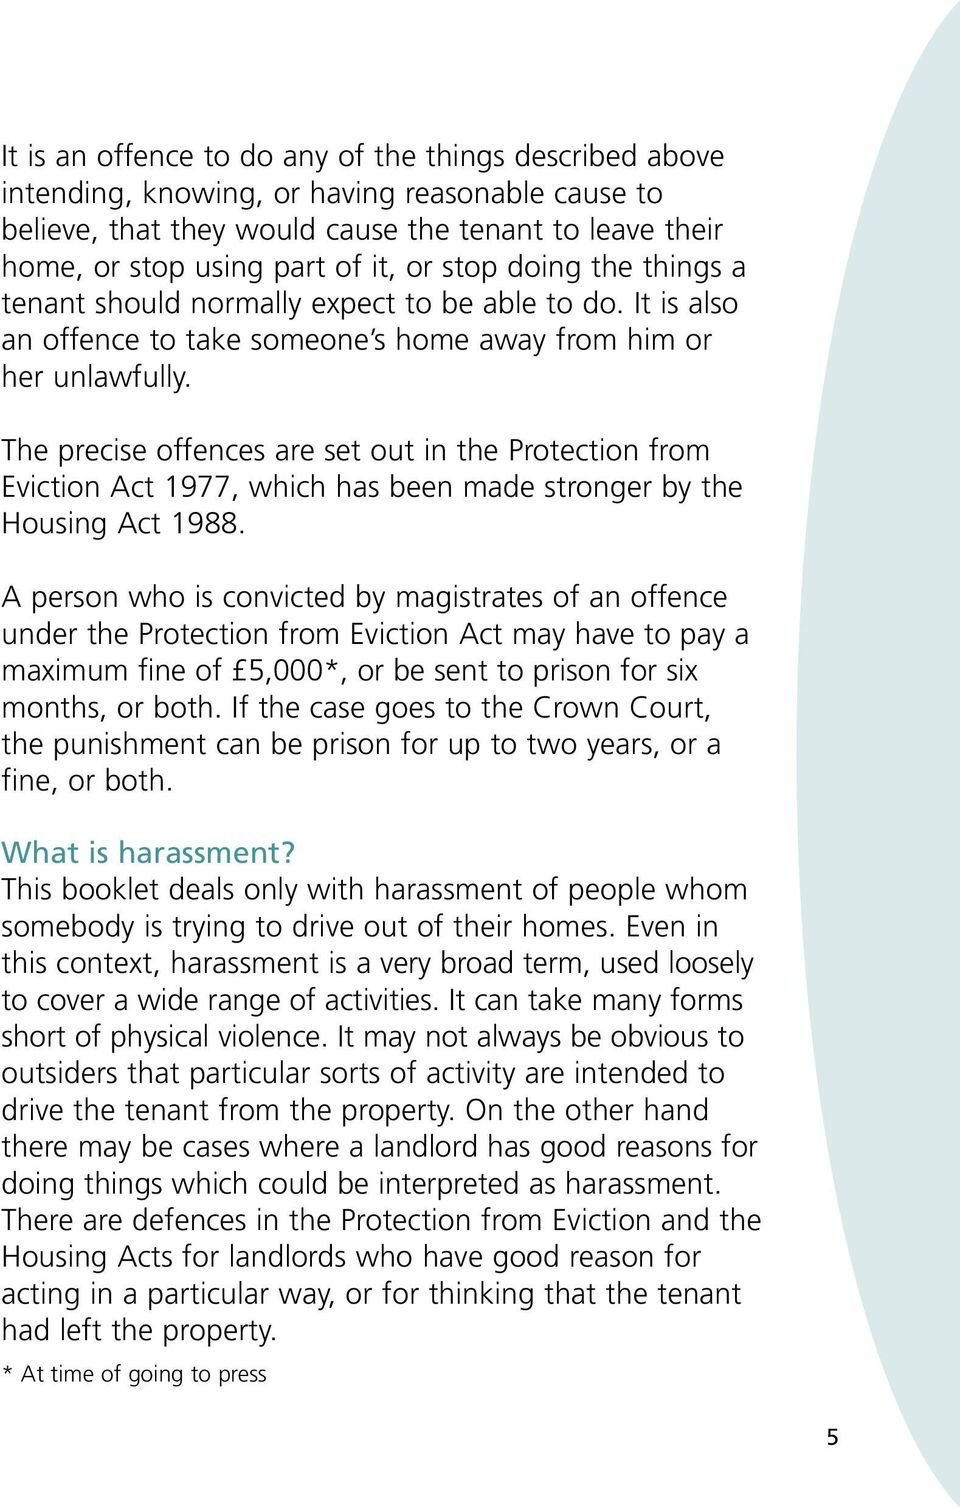 The precise offences are set out in the Protection from Eviction Act 1977, which has been made stronger by the Housing Act 1988.